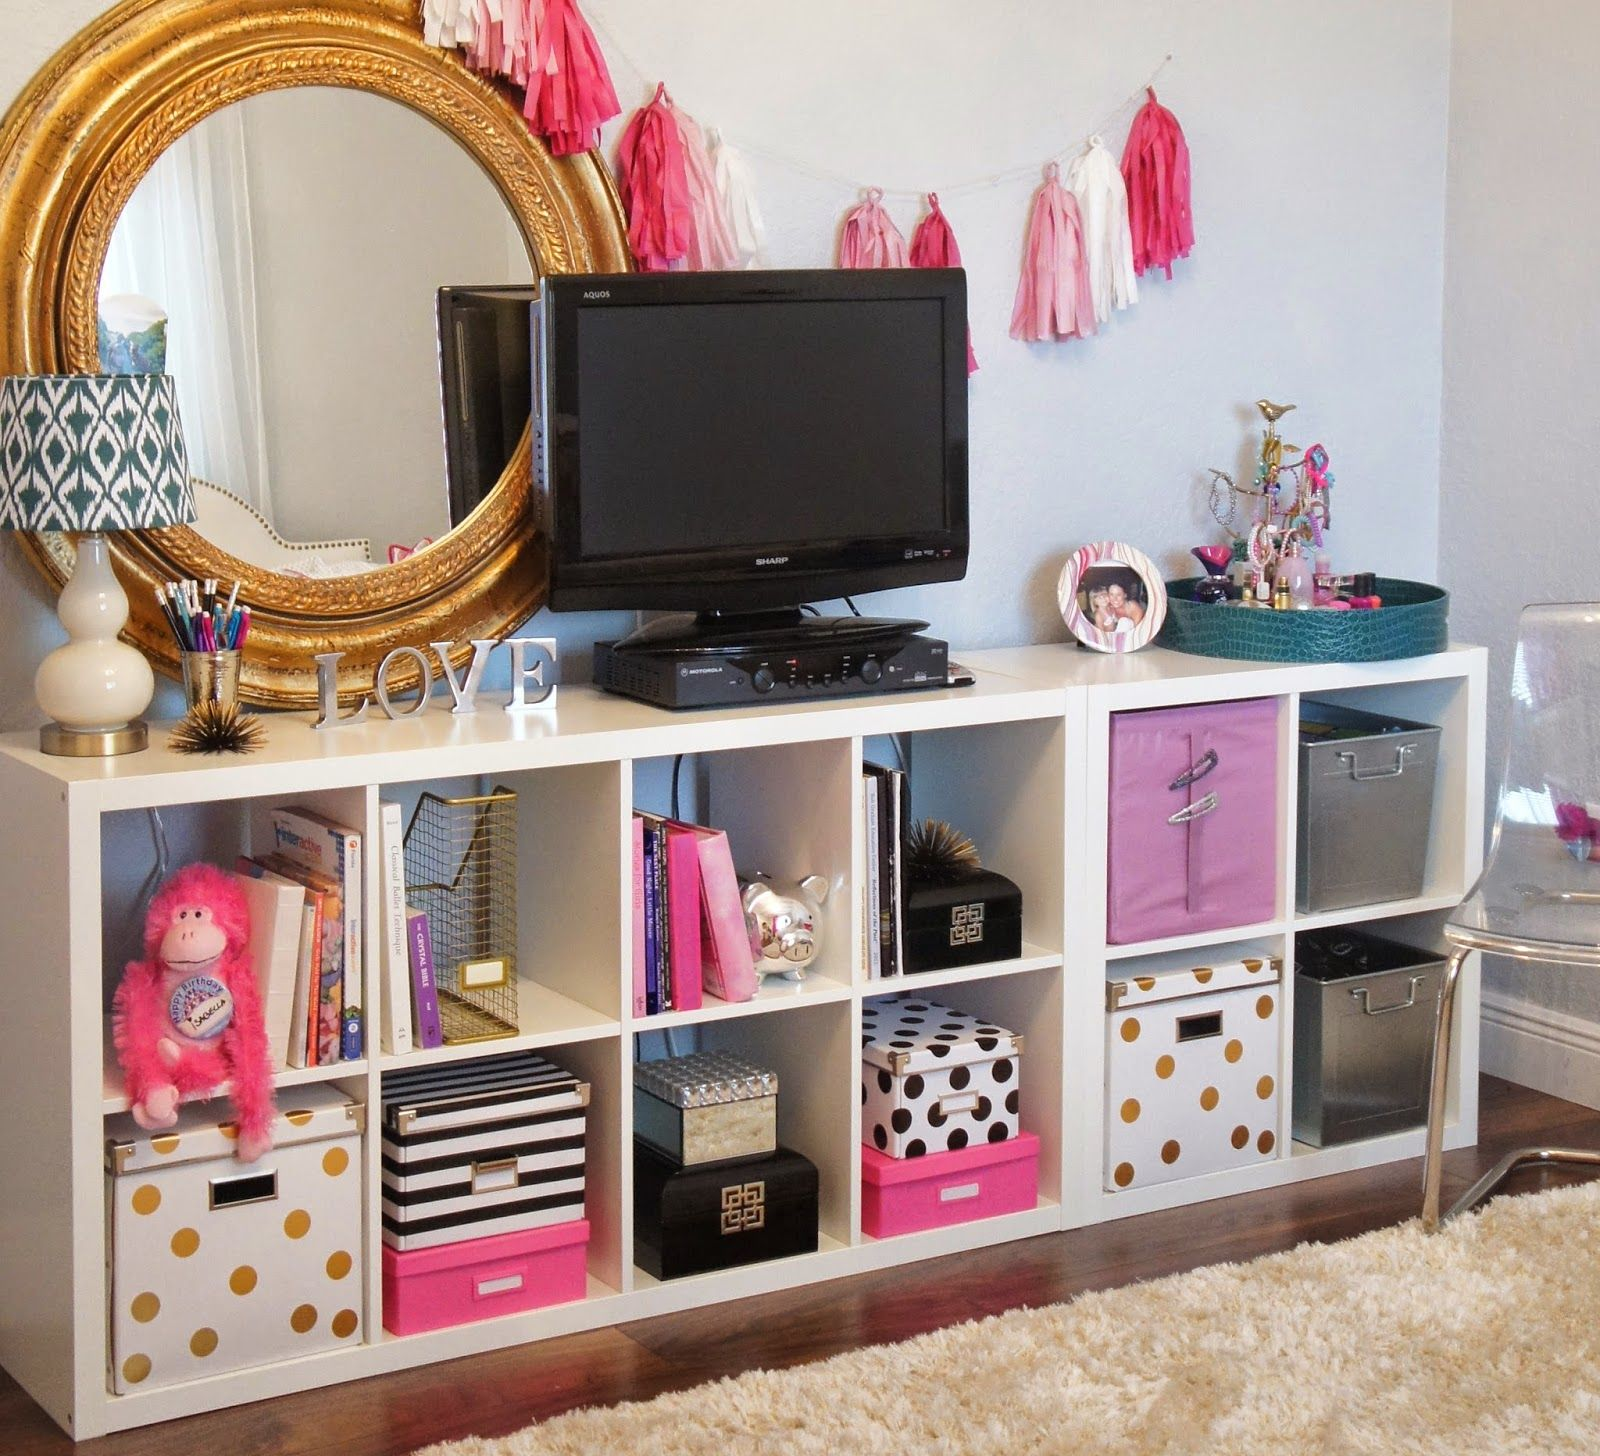 Kids Room Decor Ideas Pinterest: Ikea Expedit Decor, DIY Kate Spade Inspired Ikea Storage